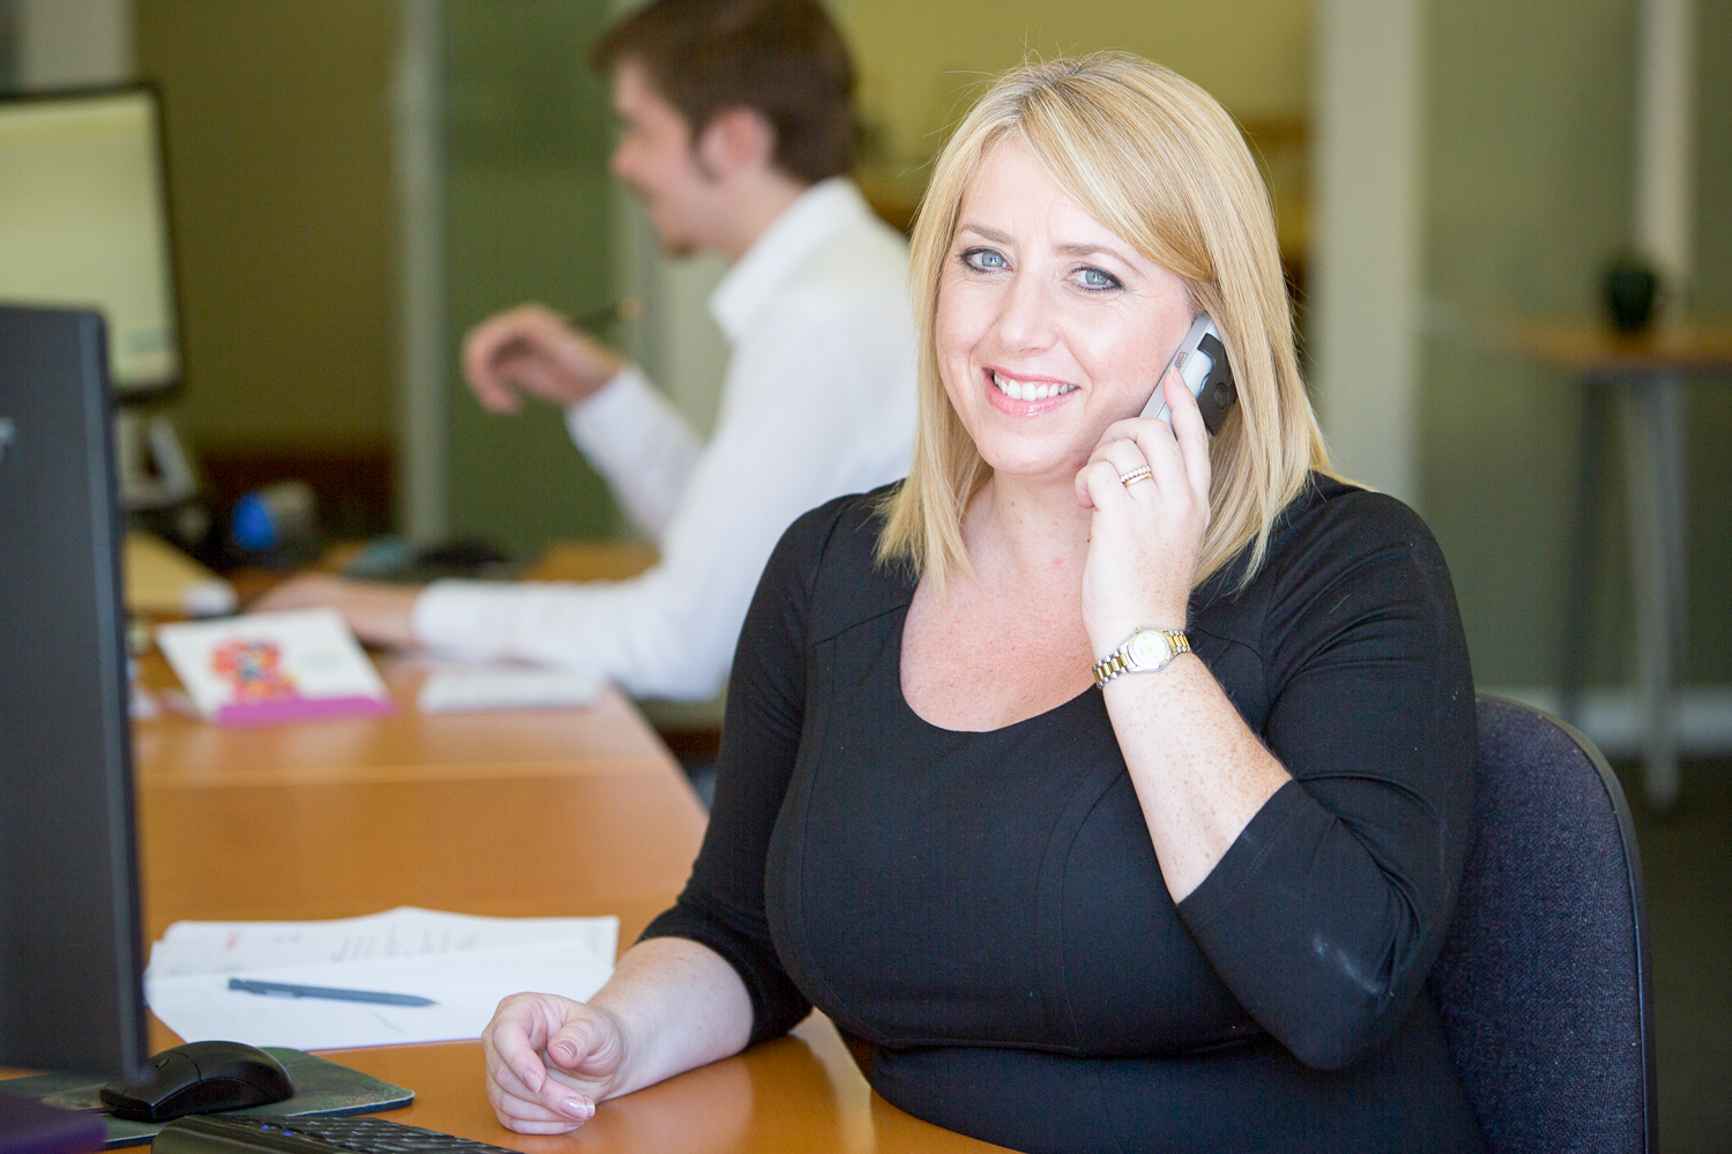 Office lady on the phone for promotional image